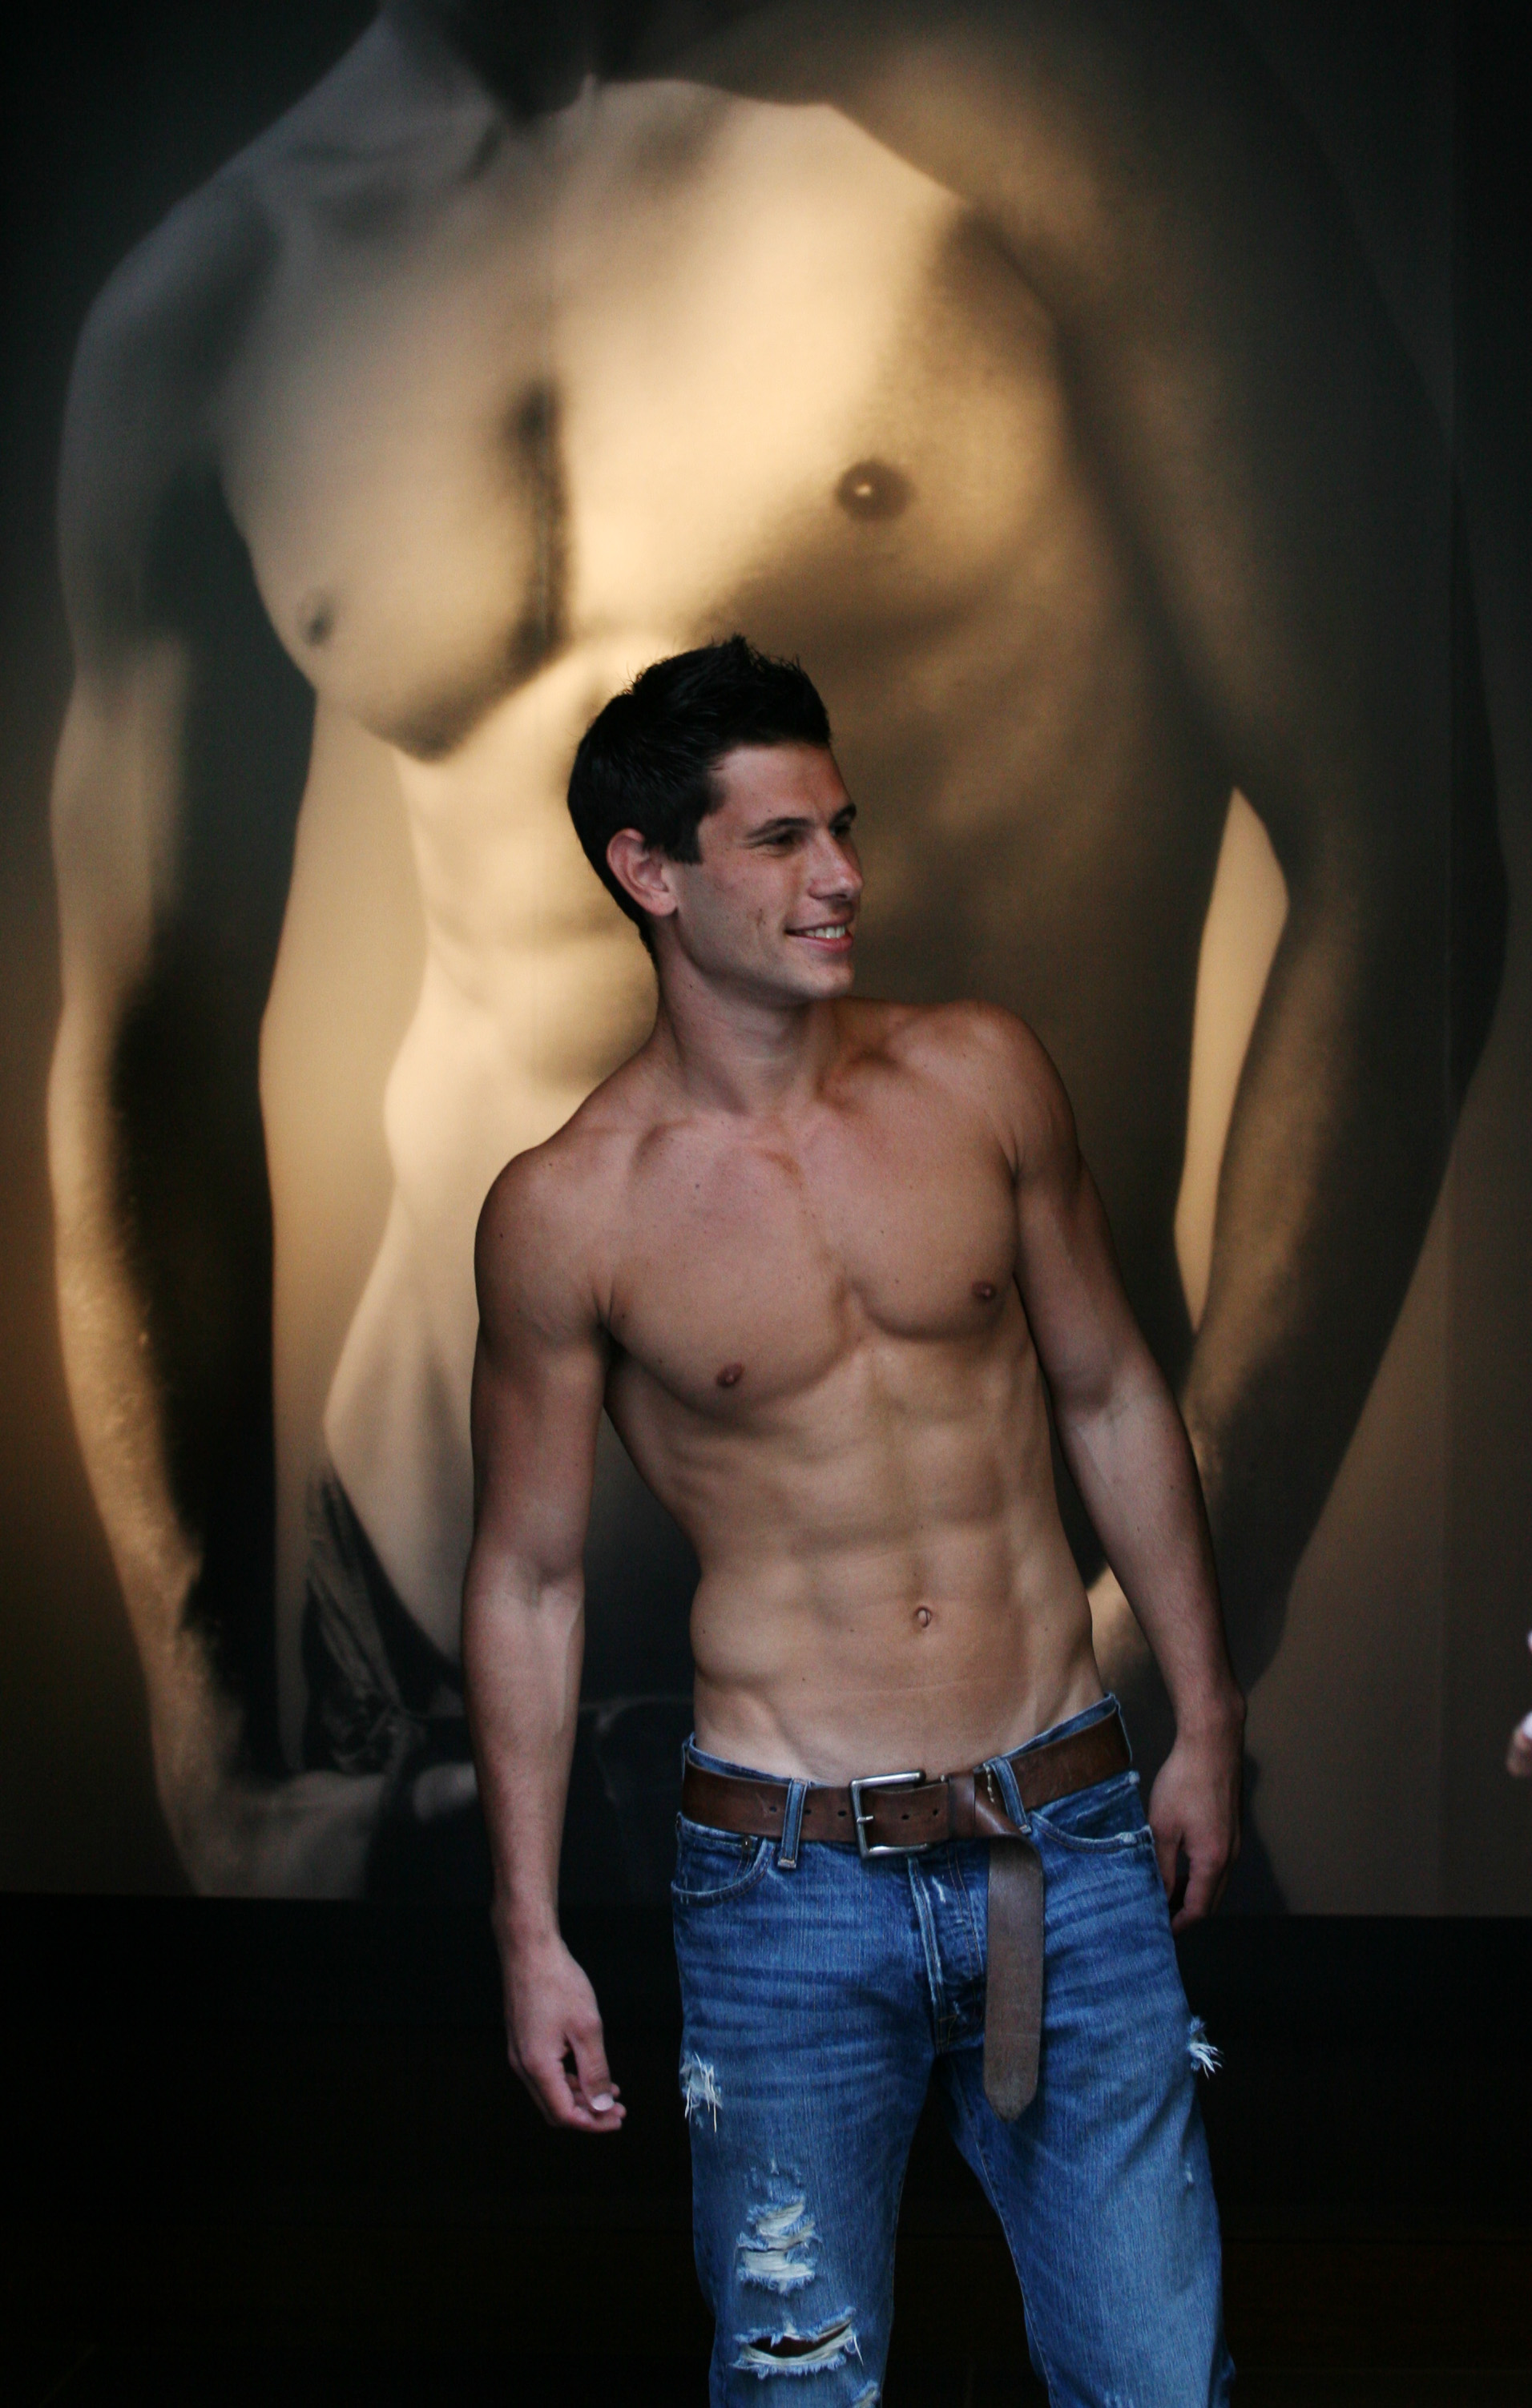 taking the abs out of abercrombie retailer tones down sexy wtop